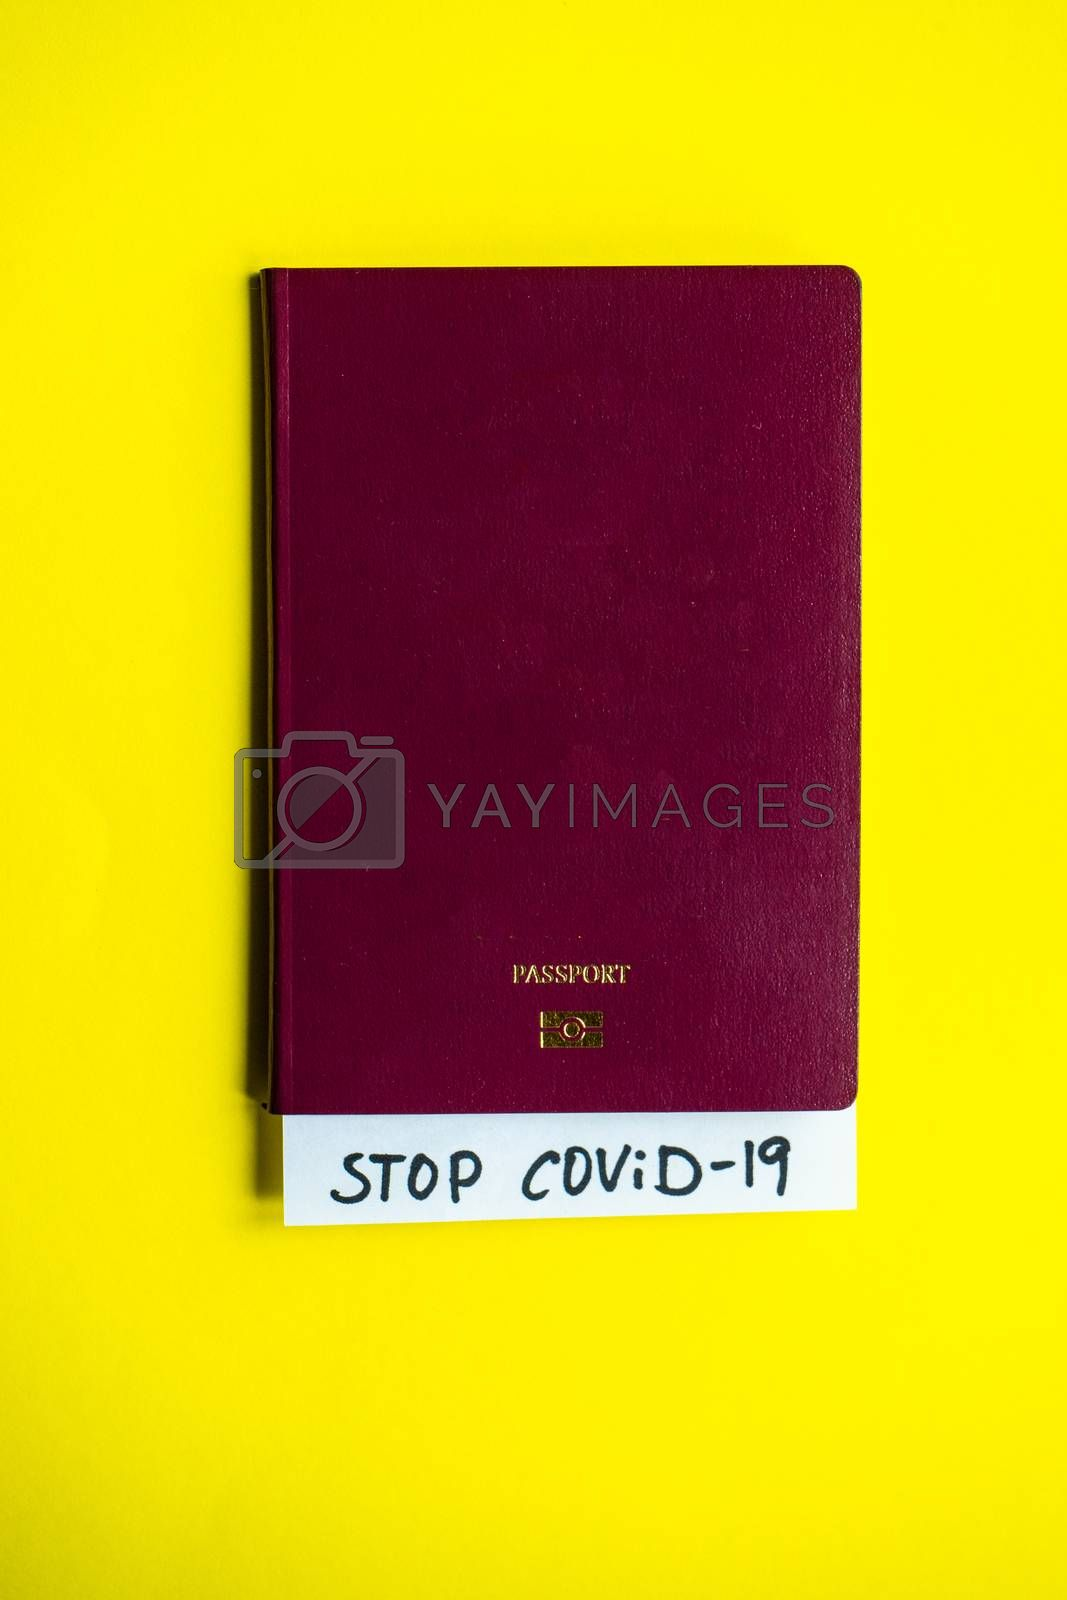 COVID-19 virus concept with passport and medicine staff onyellow pastel background with copy space